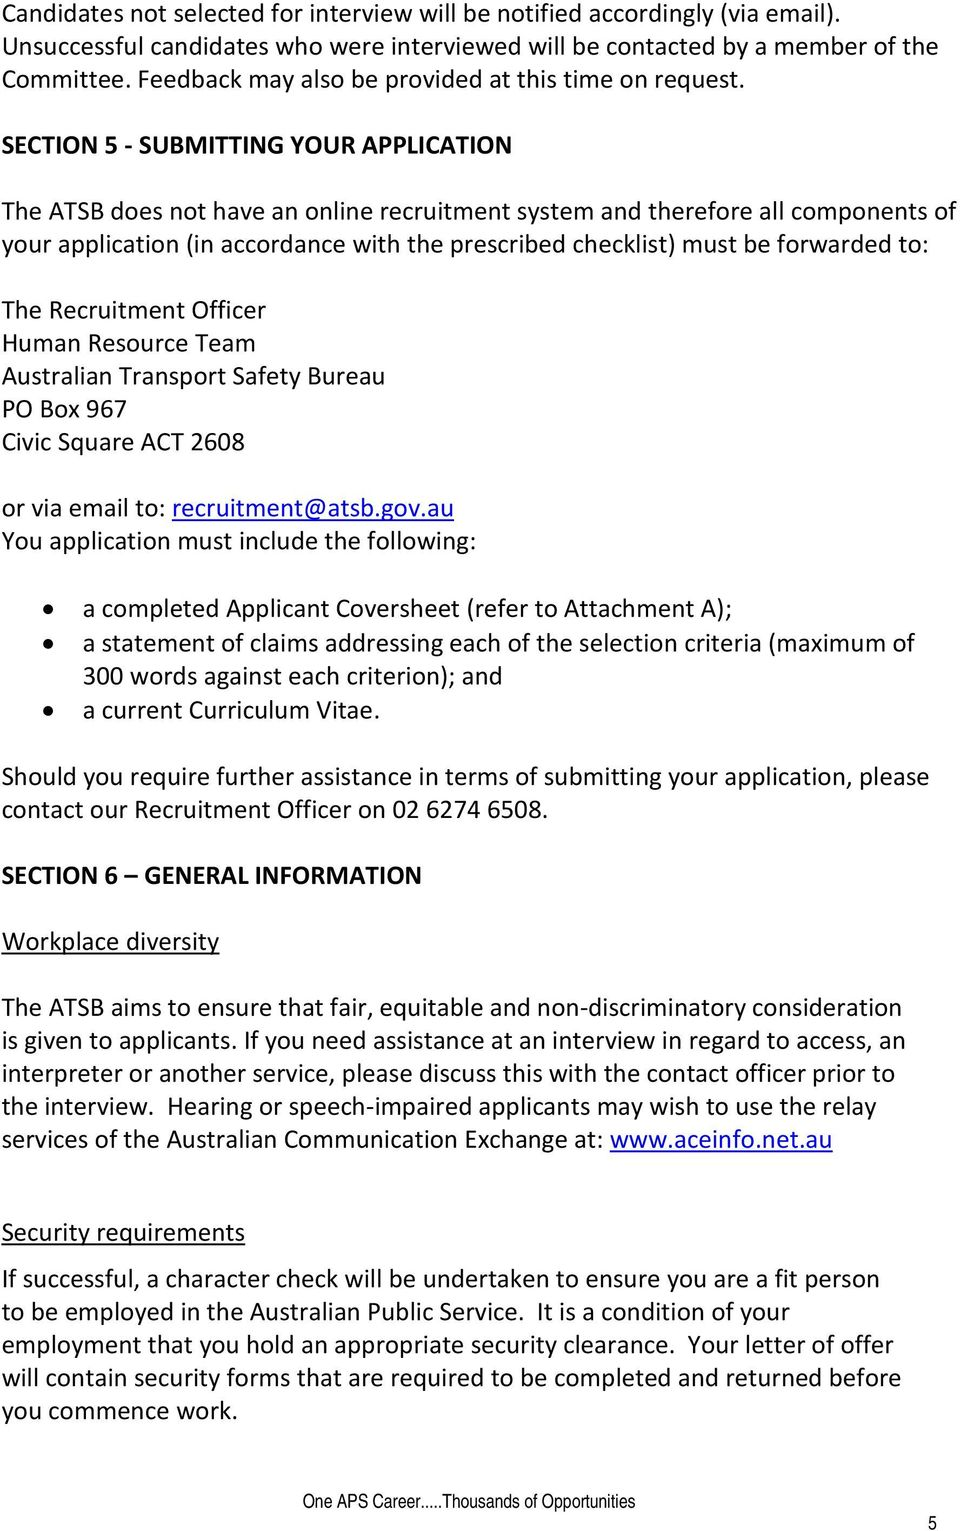 SECTION 5 - SUBMITTING YOUR APPLICATION The ATSB does not have an online recruitment system and therefore all components of your application (in accordance with the prescribed checklist) must be